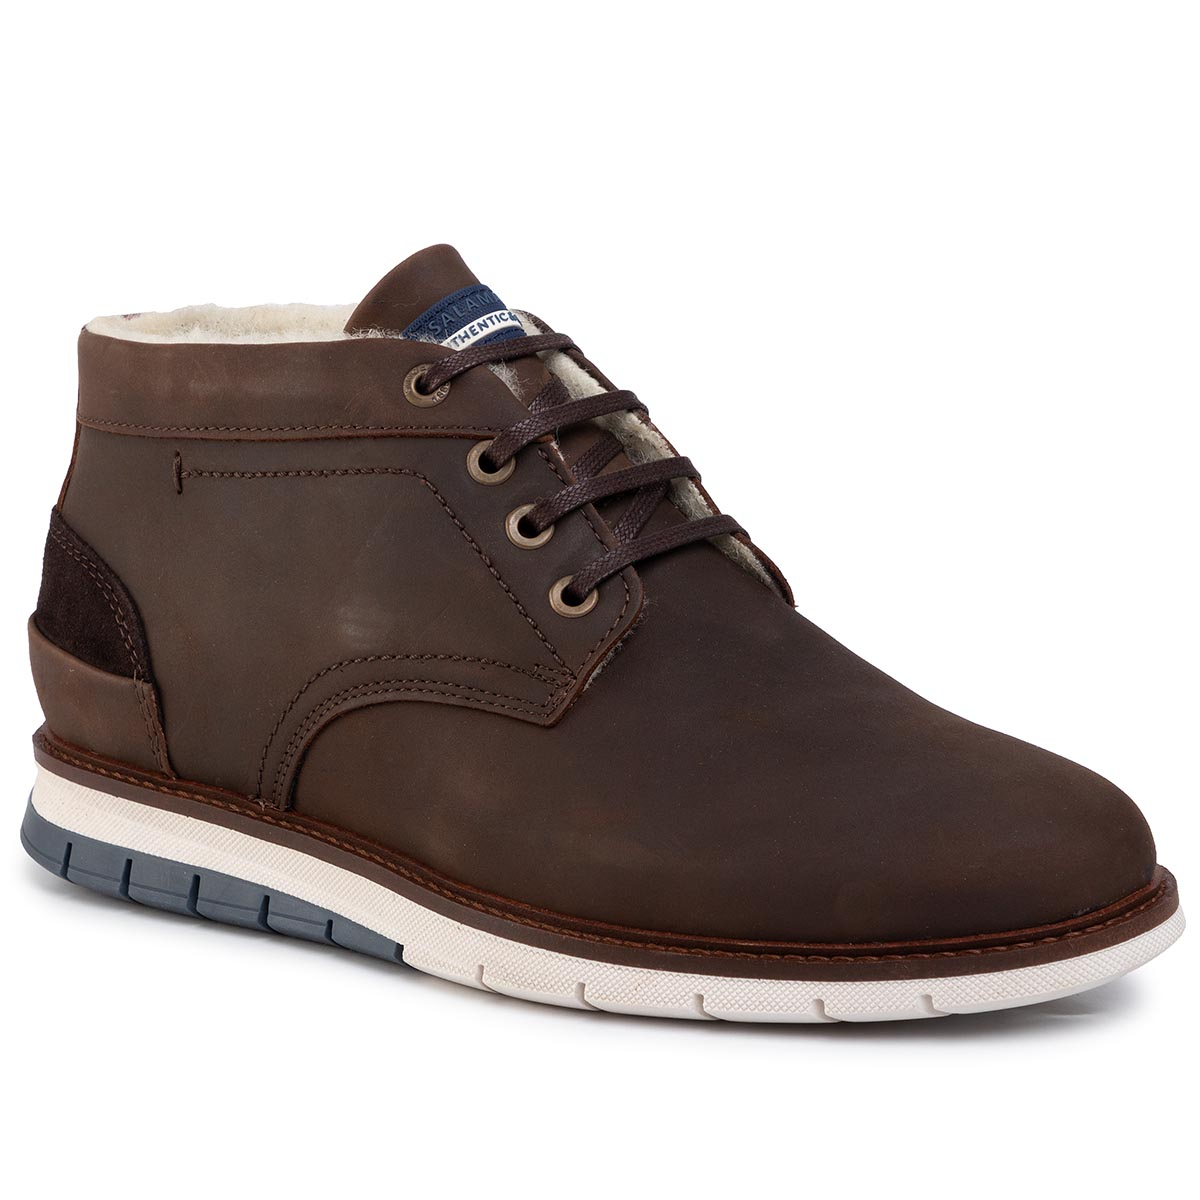 Ghete Salamander - Matheus 31-56507-64 Dark Brown/Brown/Navy imagine